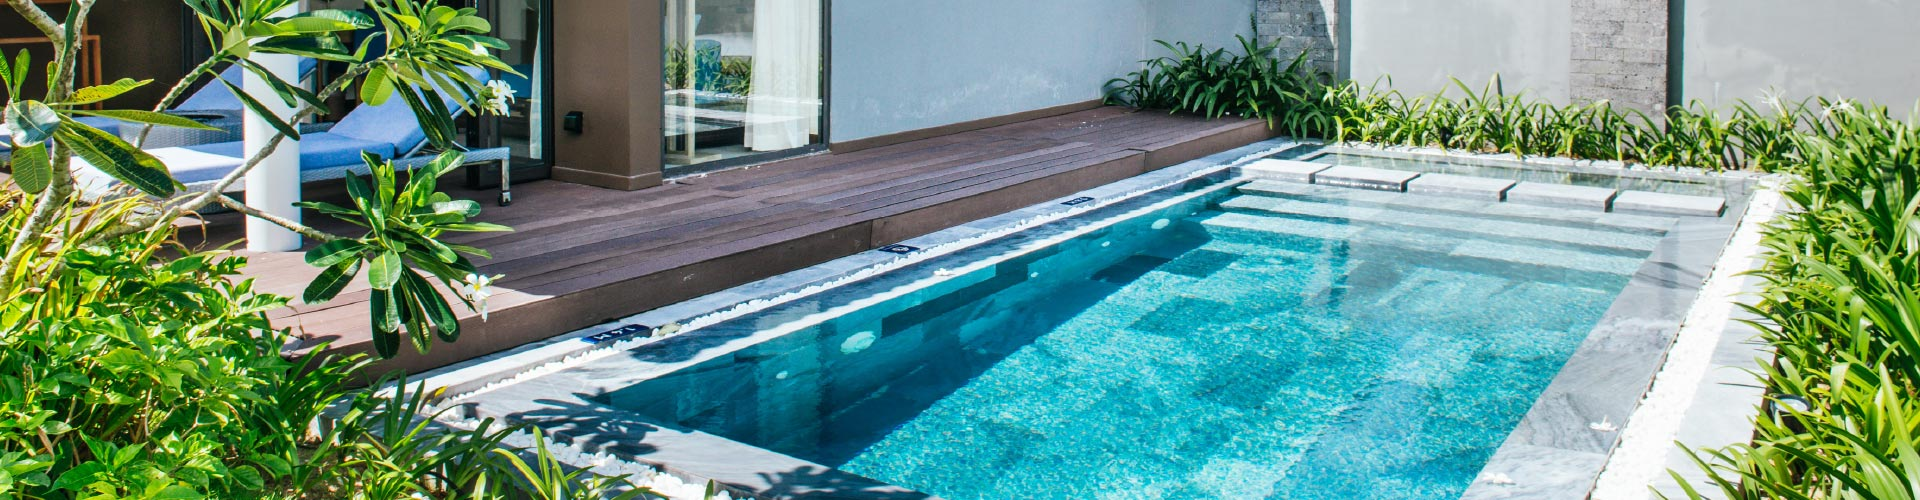 For small pools and spas